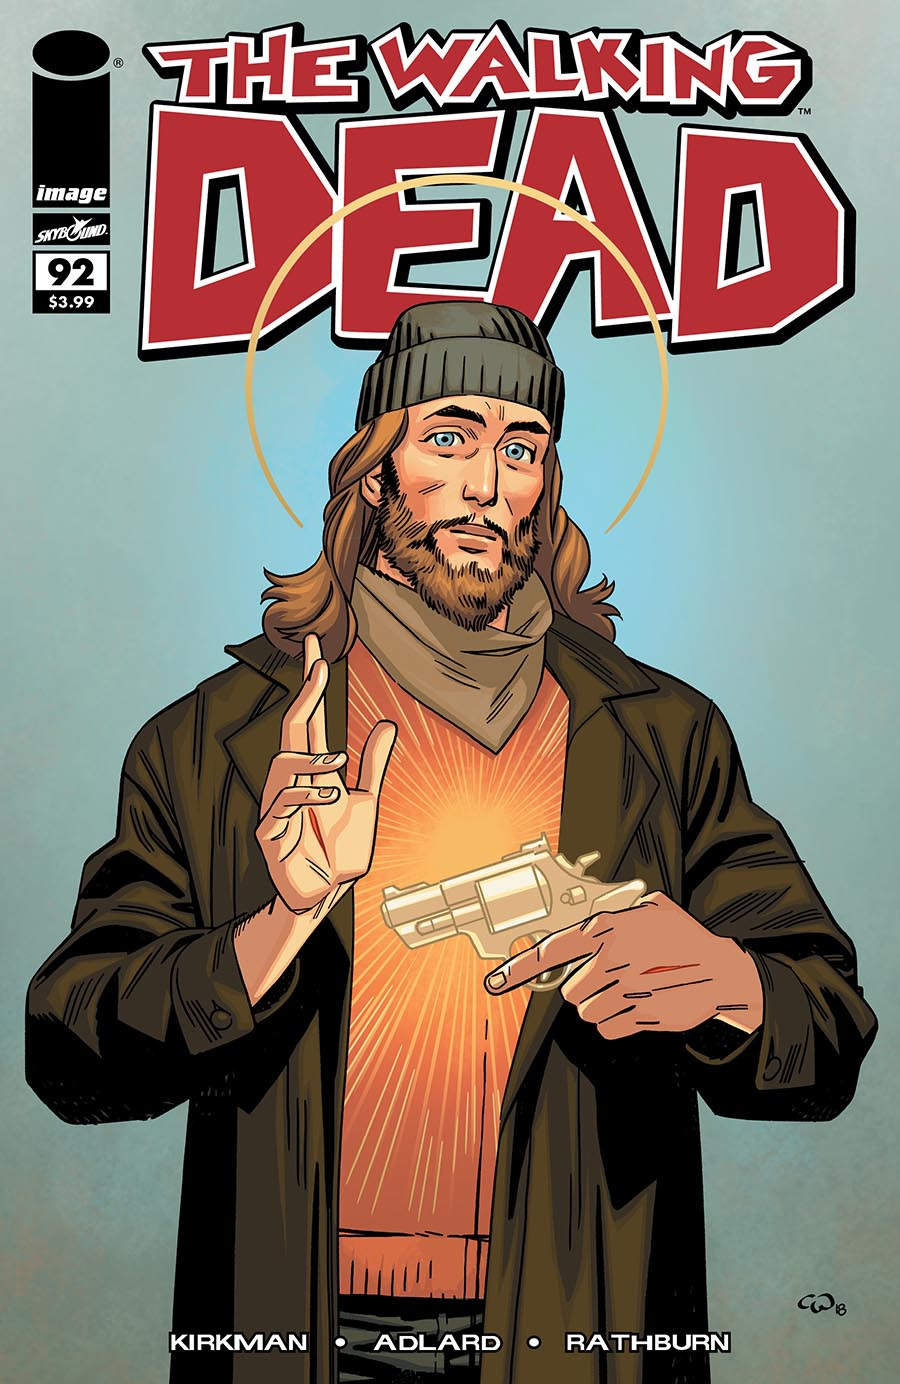 Artist: Cory Walker First credited appearance of Paul Monroe, a.k.a. Jesus.